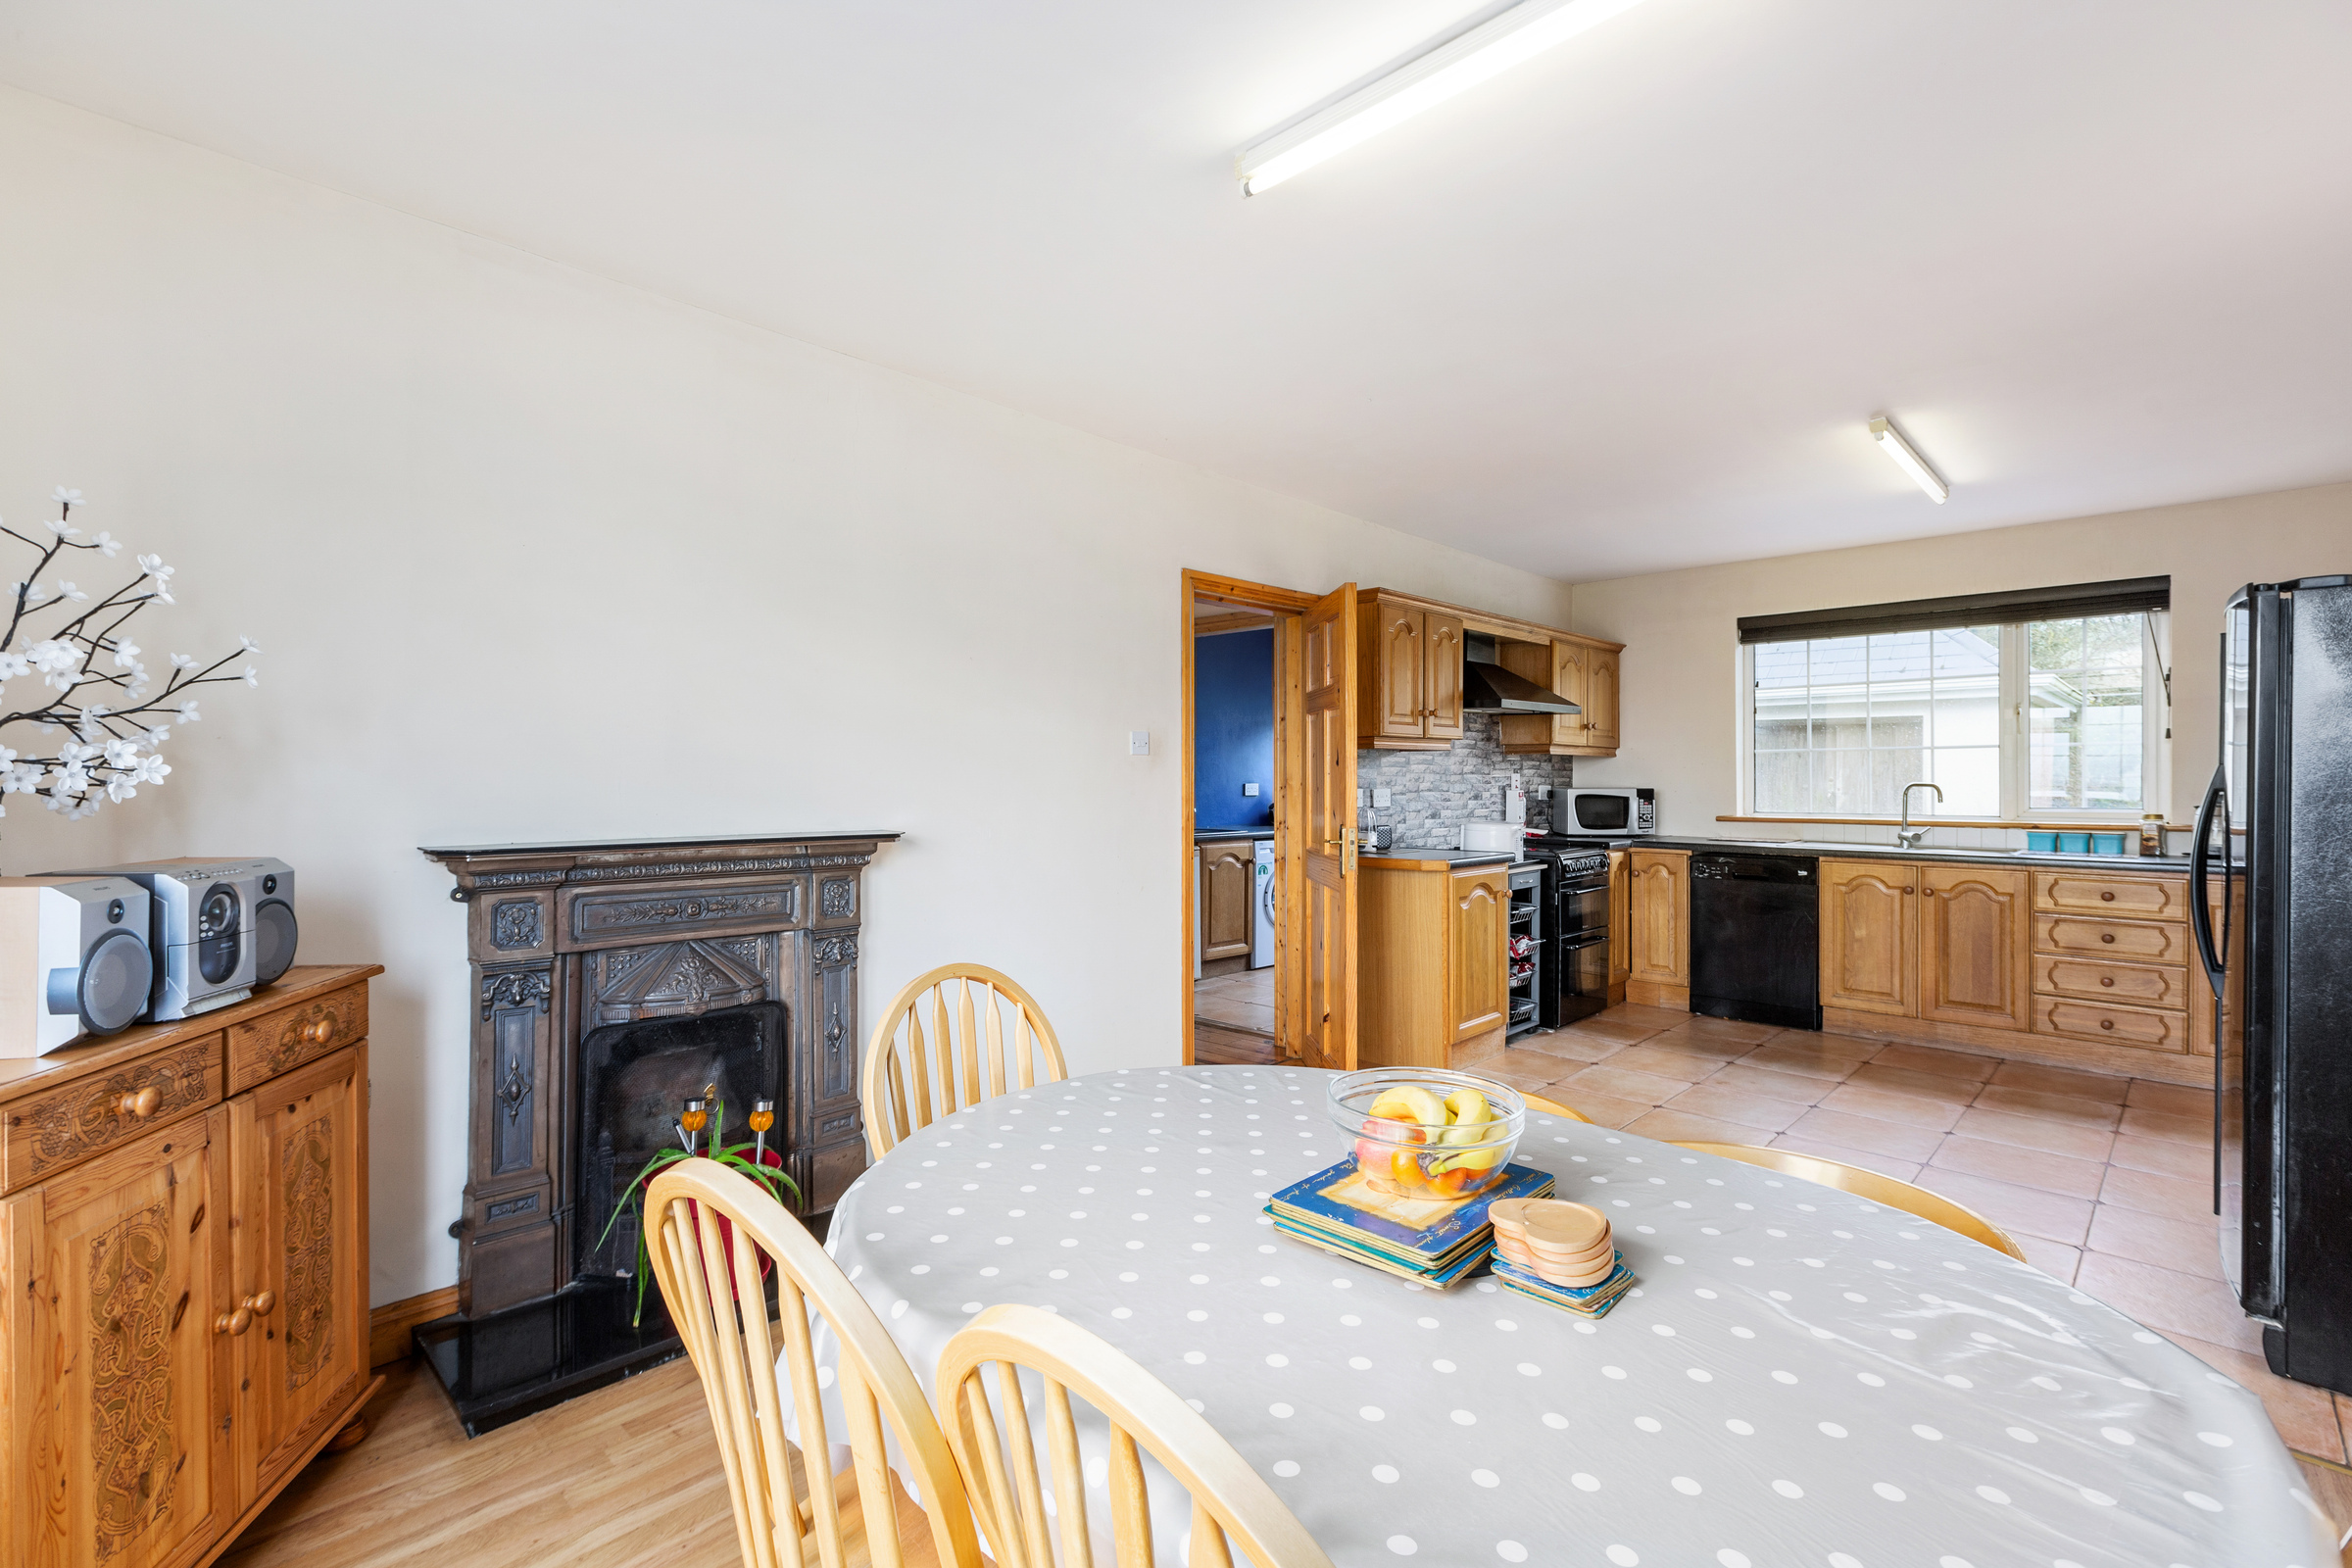 The Hill, Brideswell Little, Gorey, Co. Wexford